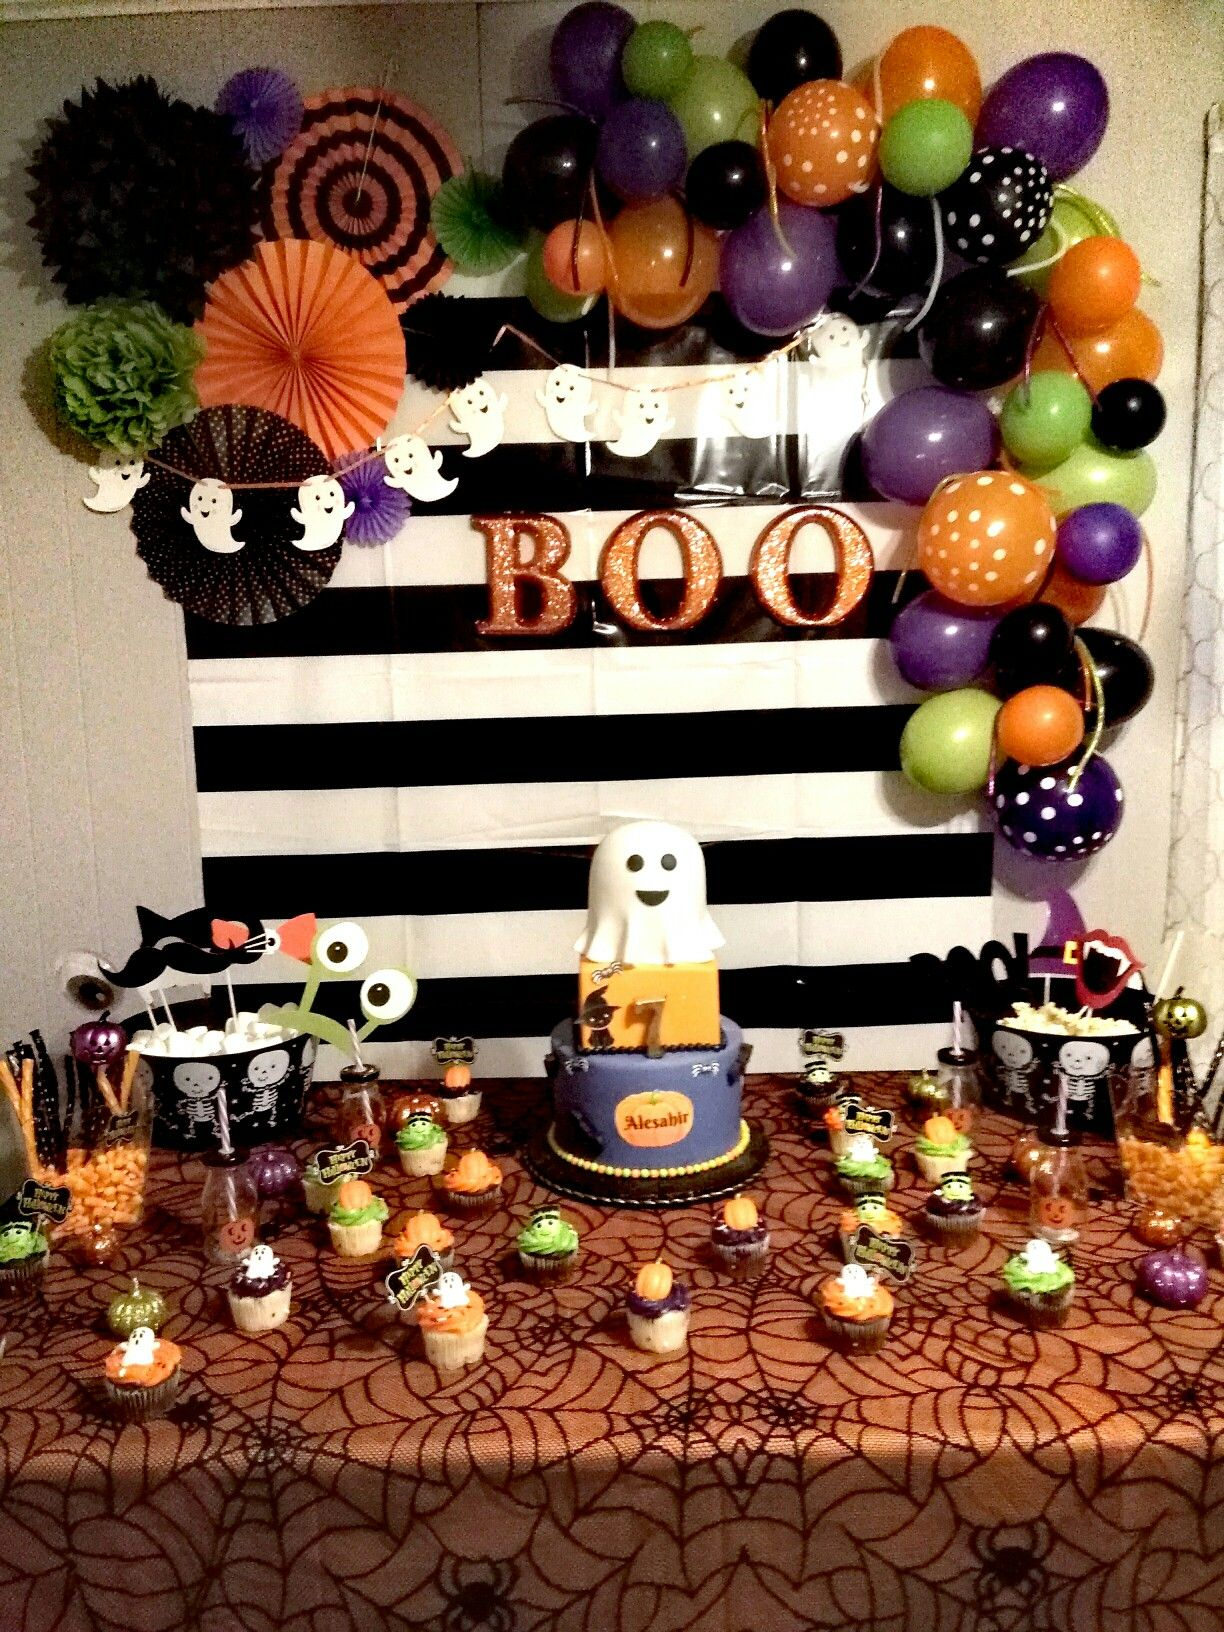 Halloween Themed Birthday Party For Toddler.My Son Halloween Birthday Party Halloween In 2019 Halloween 1st